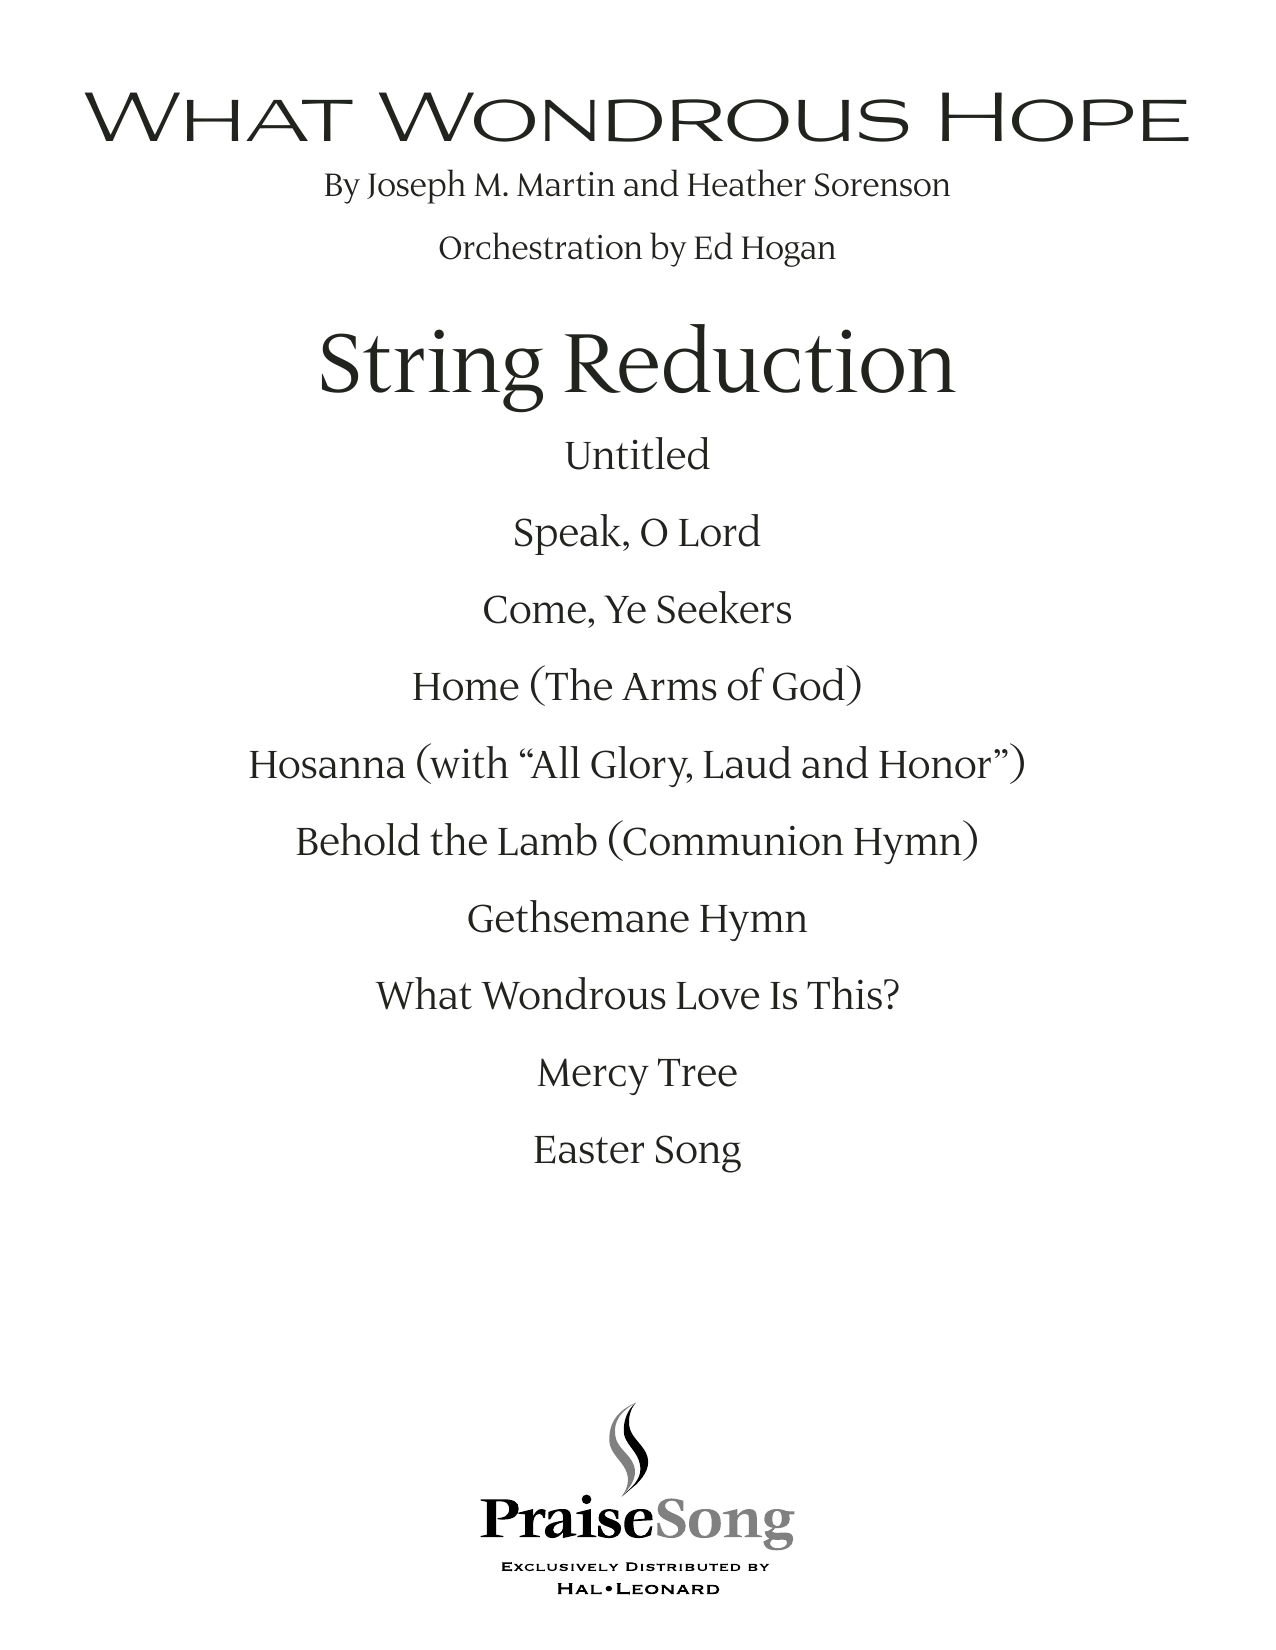 What Wondrous Hope (A Service of Promise, Grace and Life) - Keyboard String Reduction (Choir Instrumental Pak)